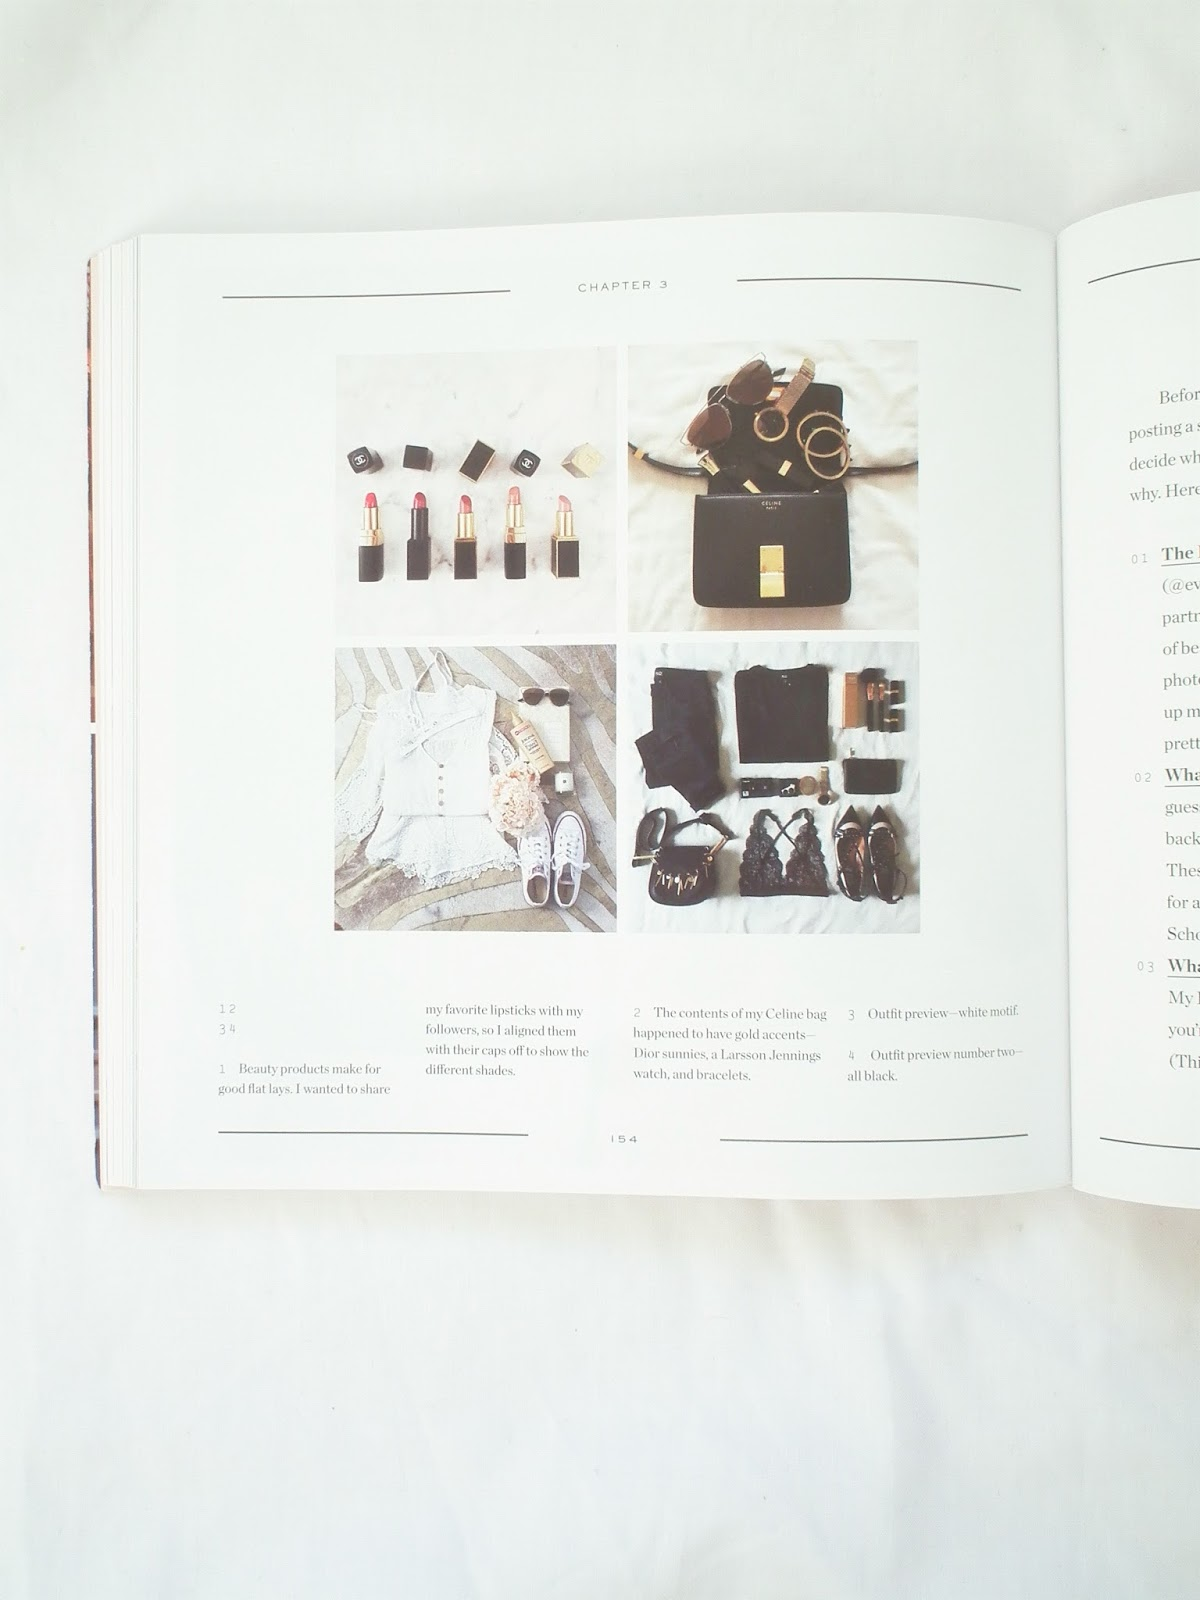 Styling Flatlay Photos - A Step by Step Guide Inspiration Theme